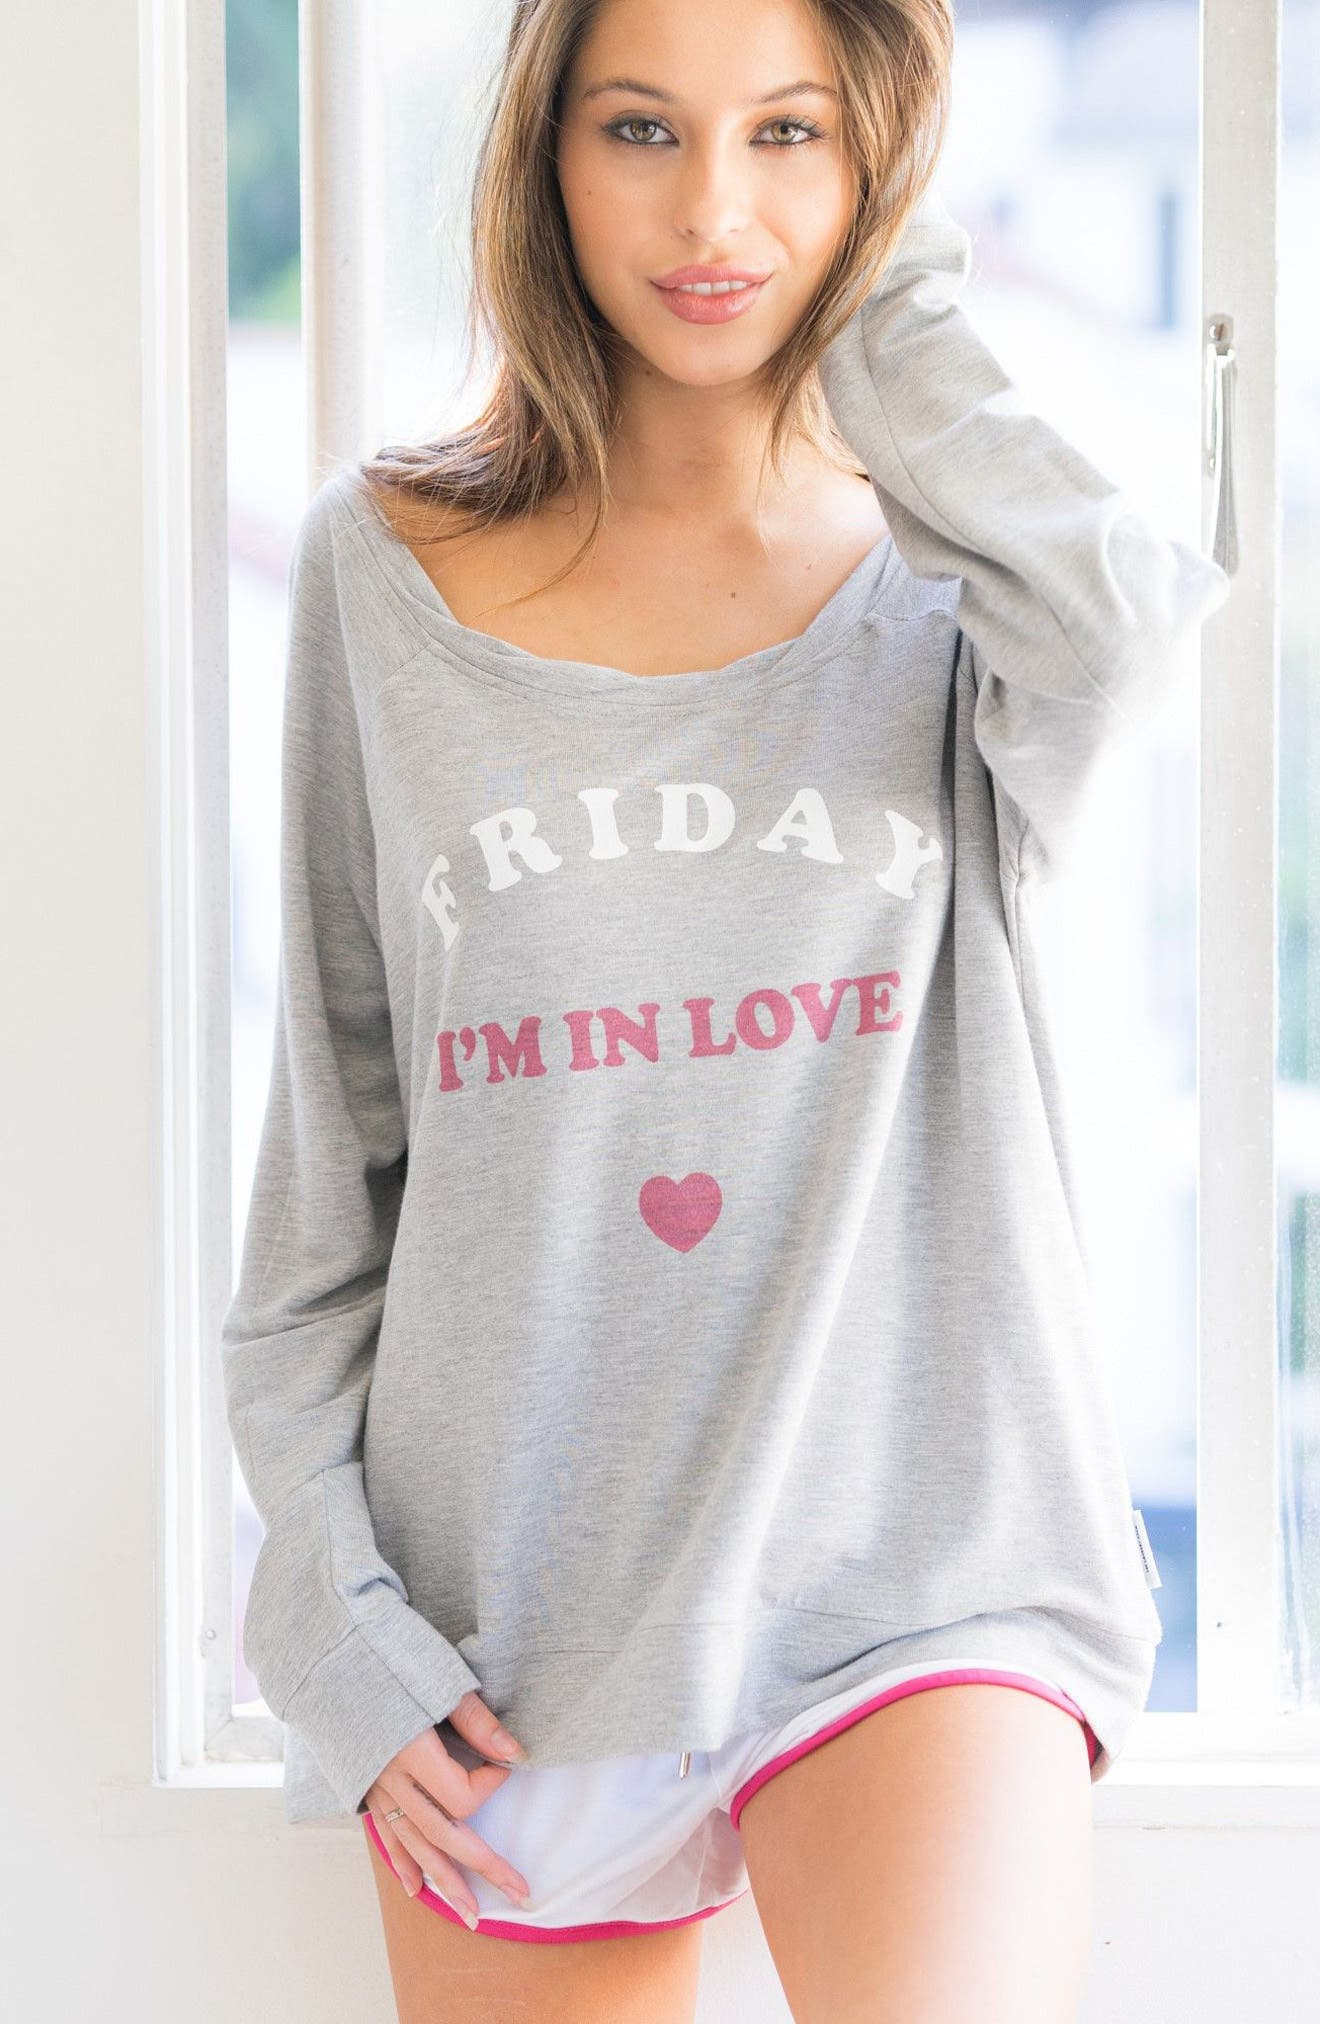 Friday I'm In Love Sweatshirt,                             Alternate thumbnail 7, color,                             059